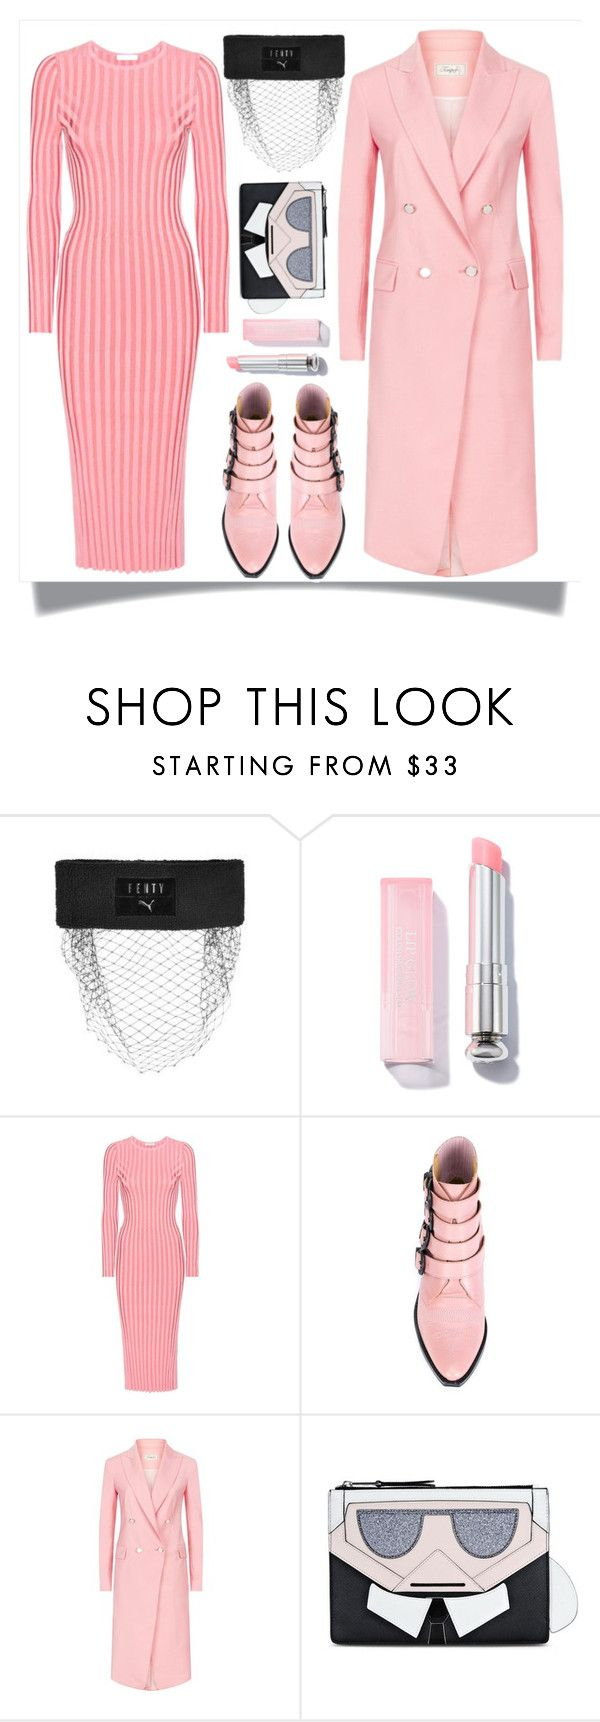 """Pink Coat"" by skad183 ❤ liked on Polyvore featuring Puma, Altuzarra, Toga, Temperley London and Karl Lagerfeld"